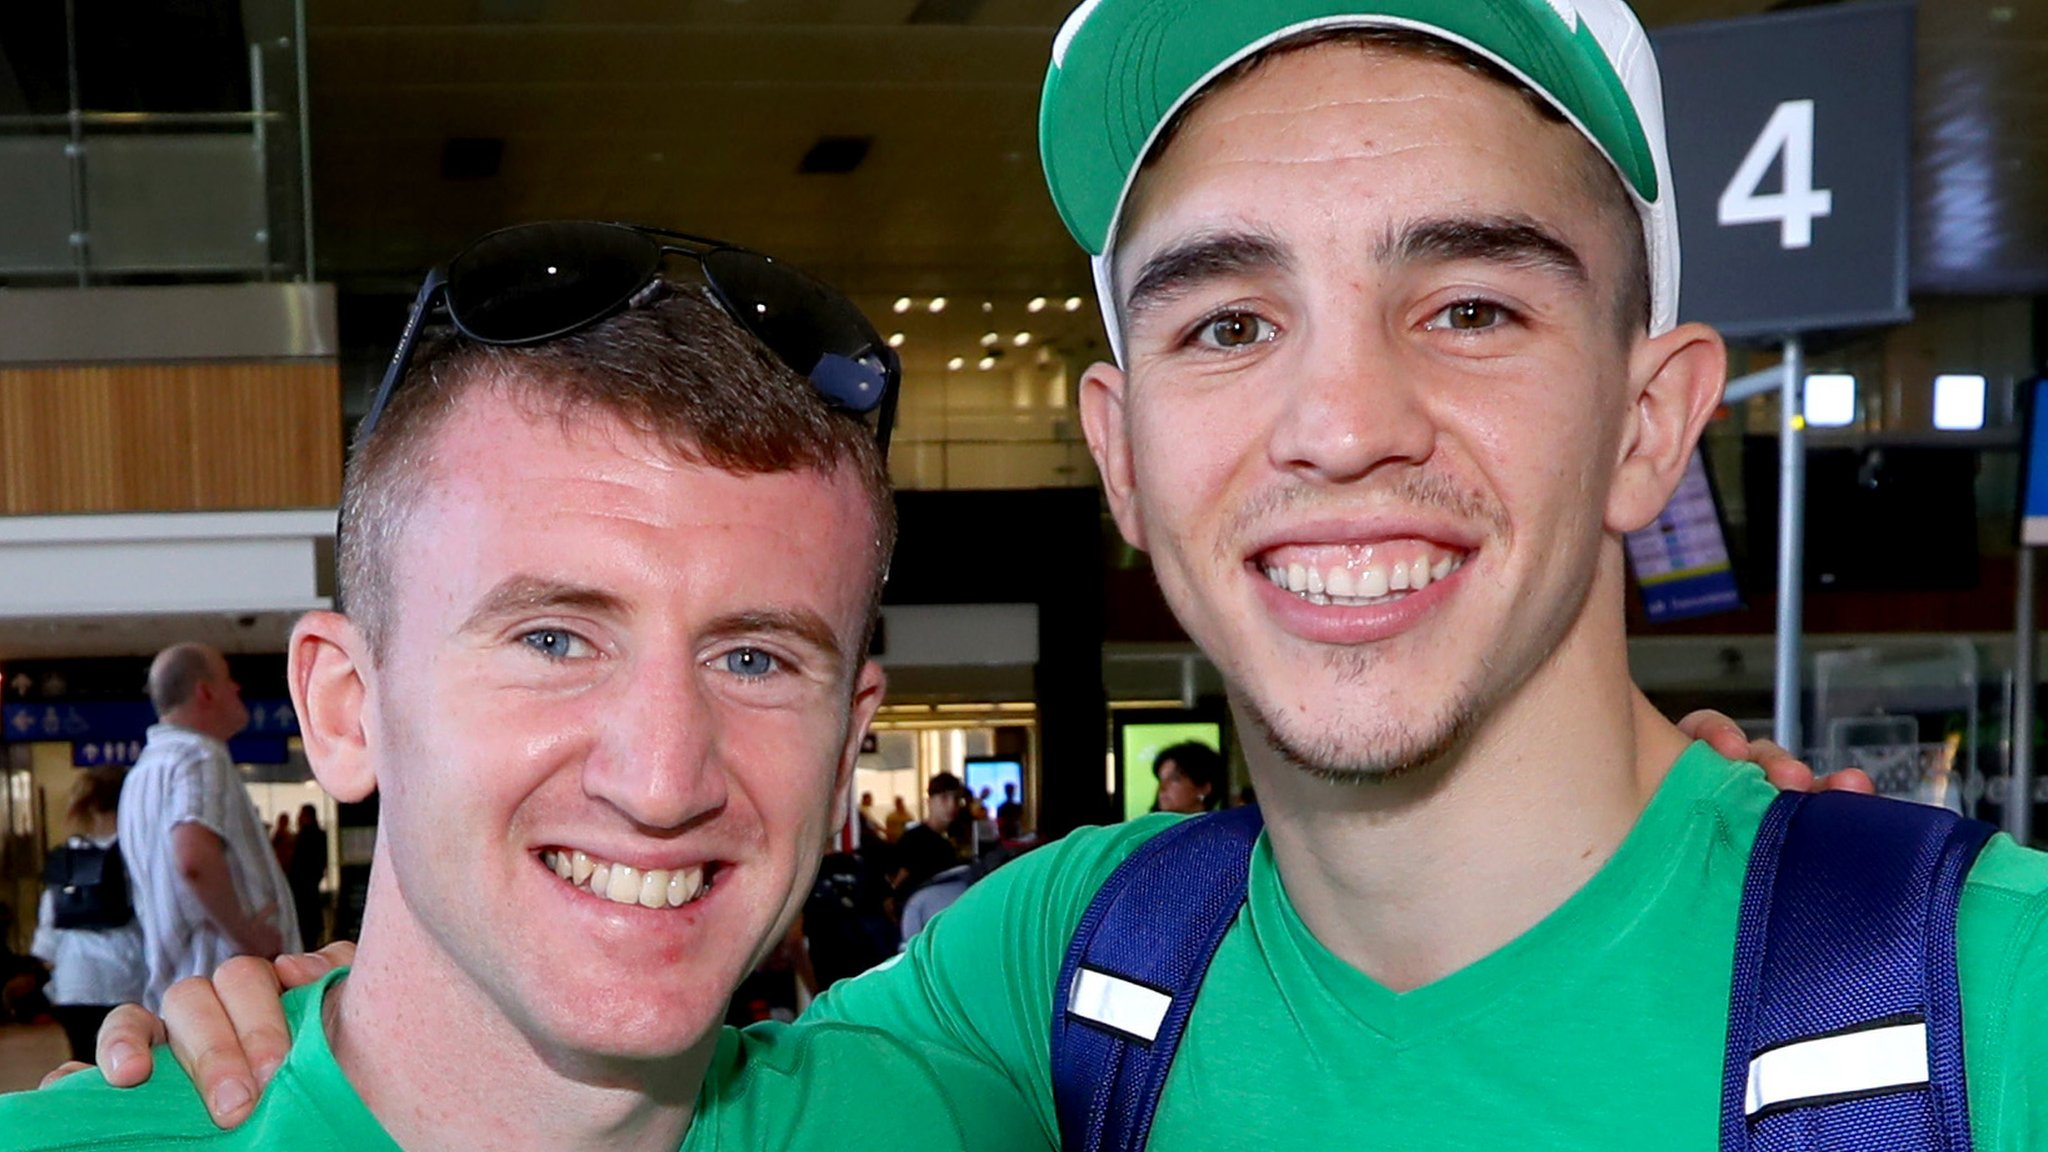 Michael Conlan and Paddy Barnes to fight on Frampton-Warrington bill in Manchester